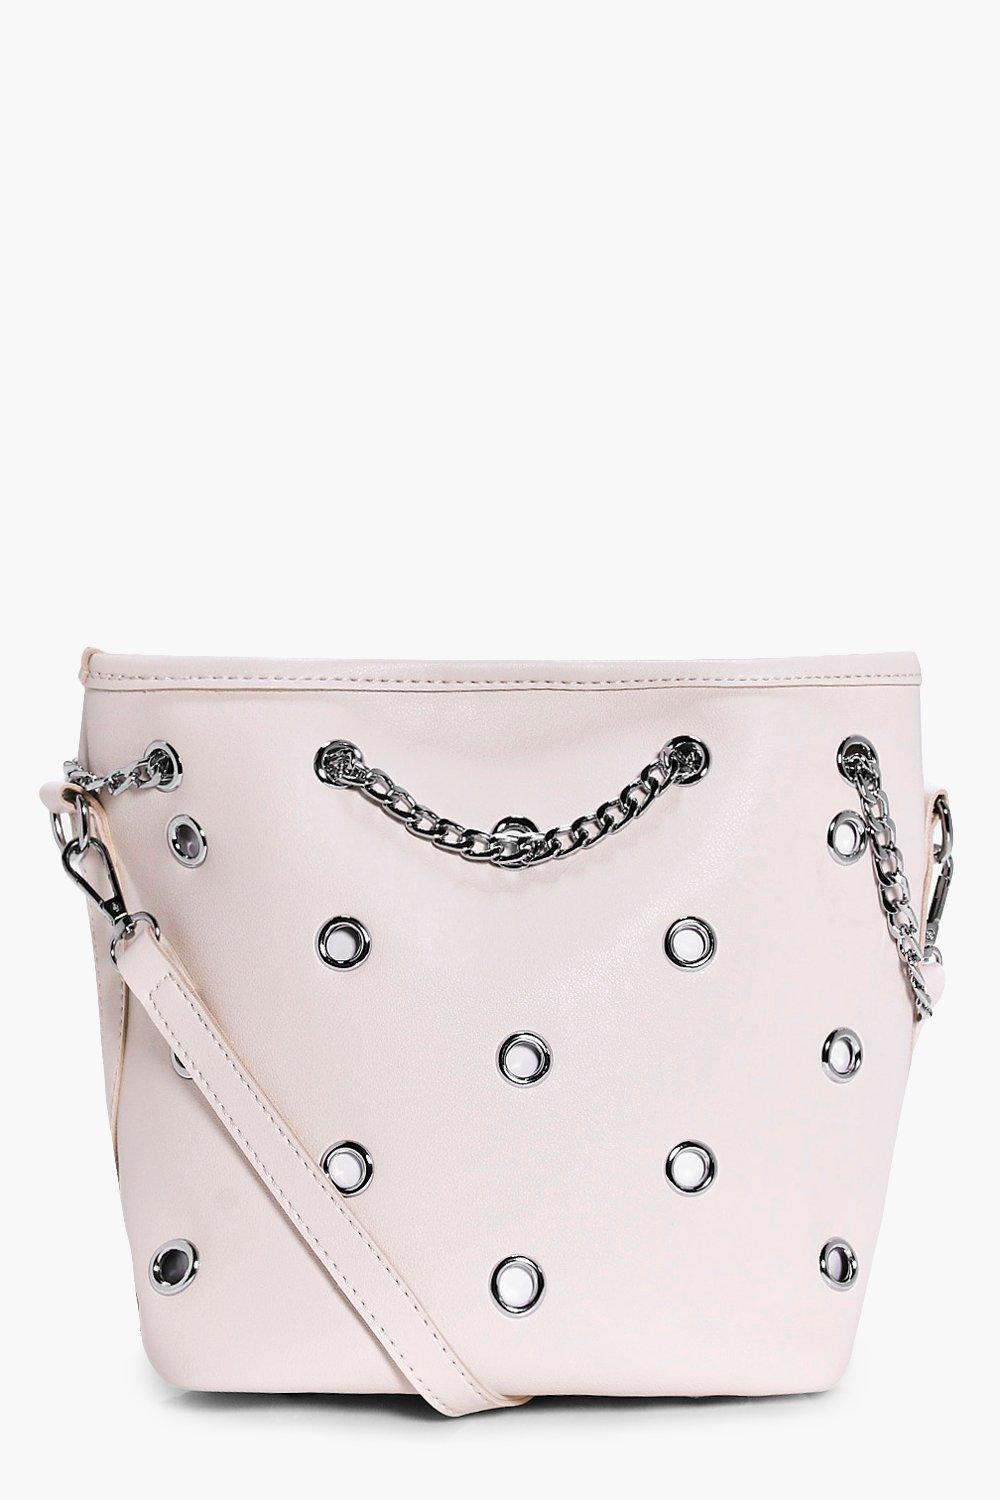 Eyelet Bucket Bag - white - Sofia Eyelet Bucket Ba